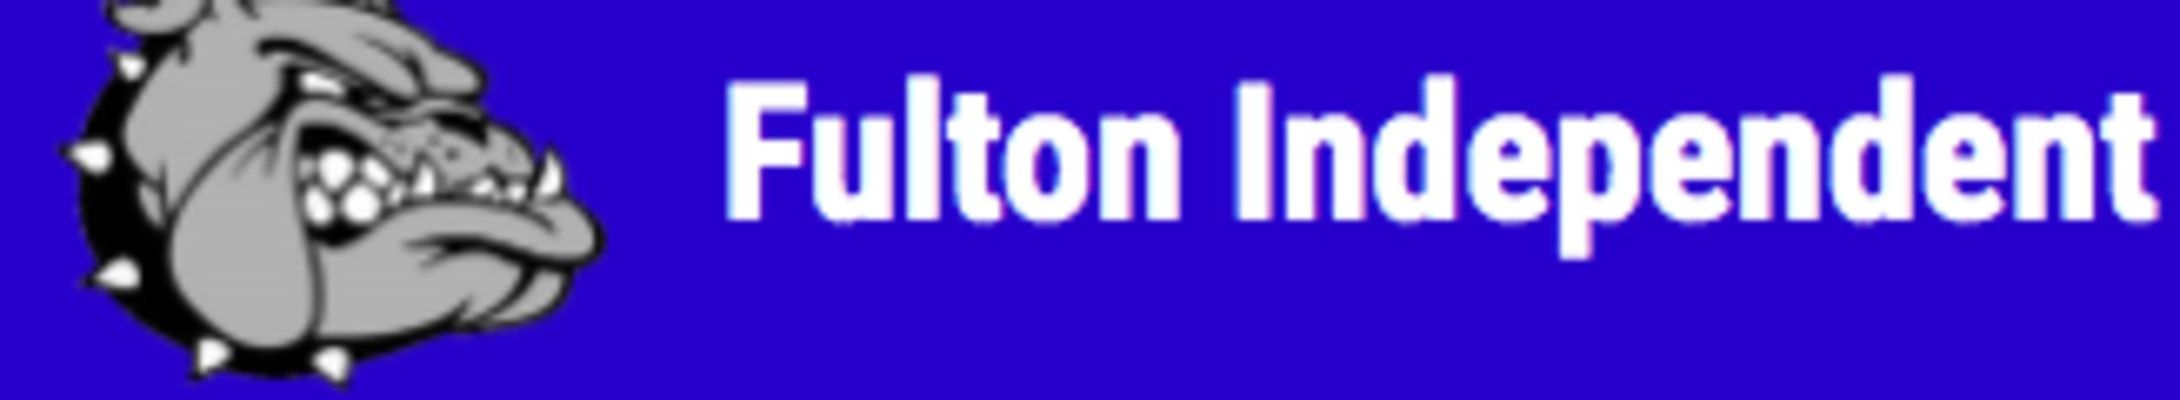 FULTON INDEPENDENT BOARD OF EDUCATION SPECIAL CALLED SESSION OCT. 14